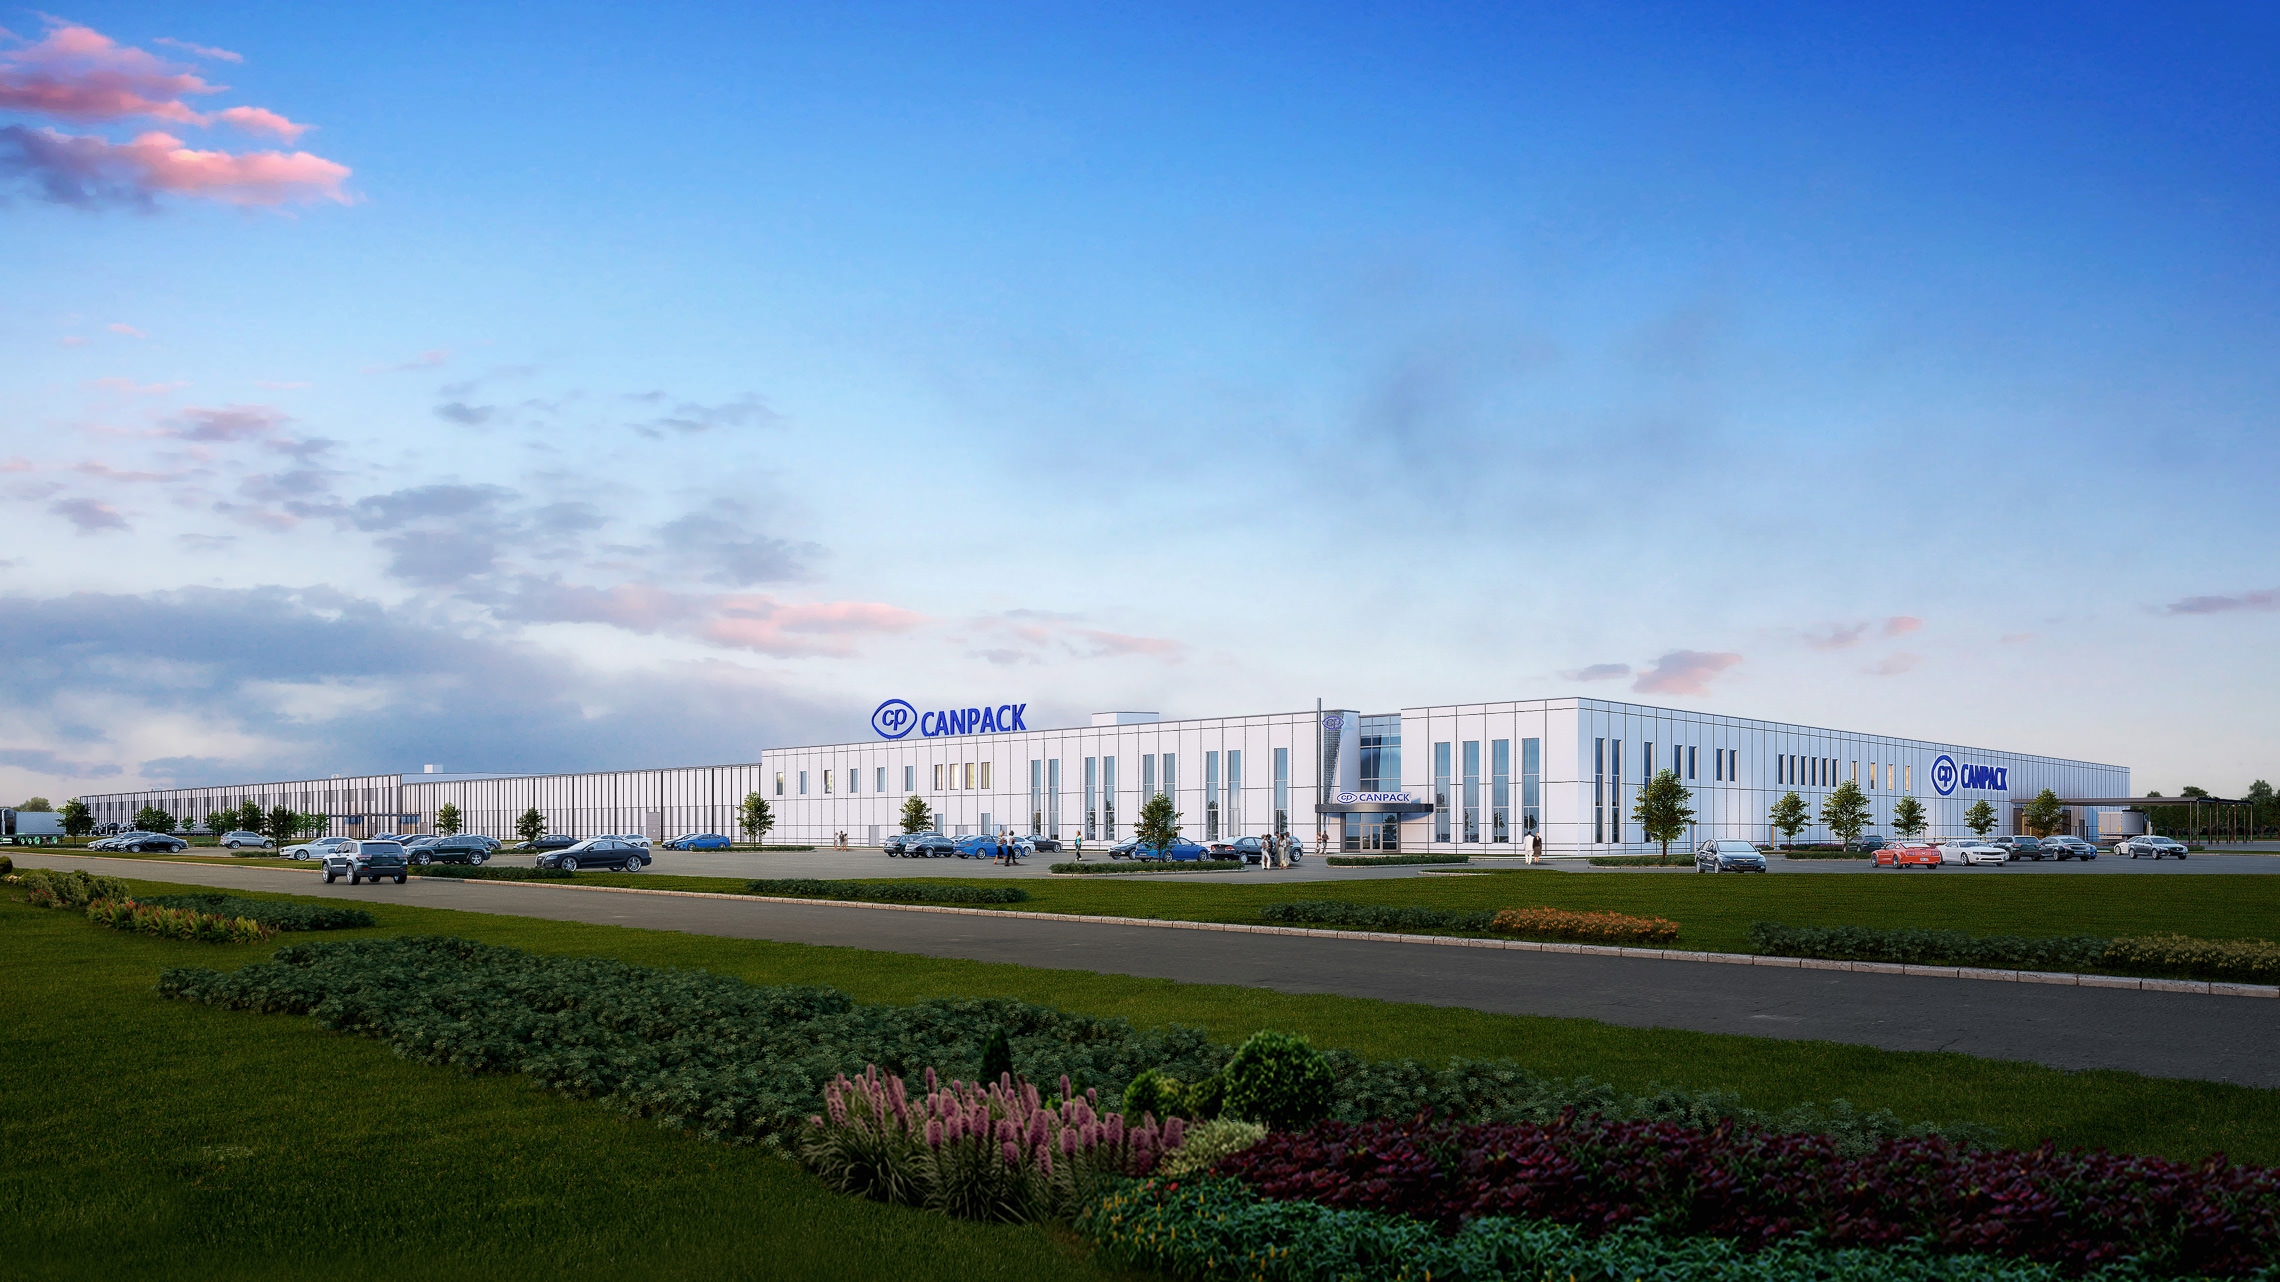 Exterior rendering of new manufacturing facility with